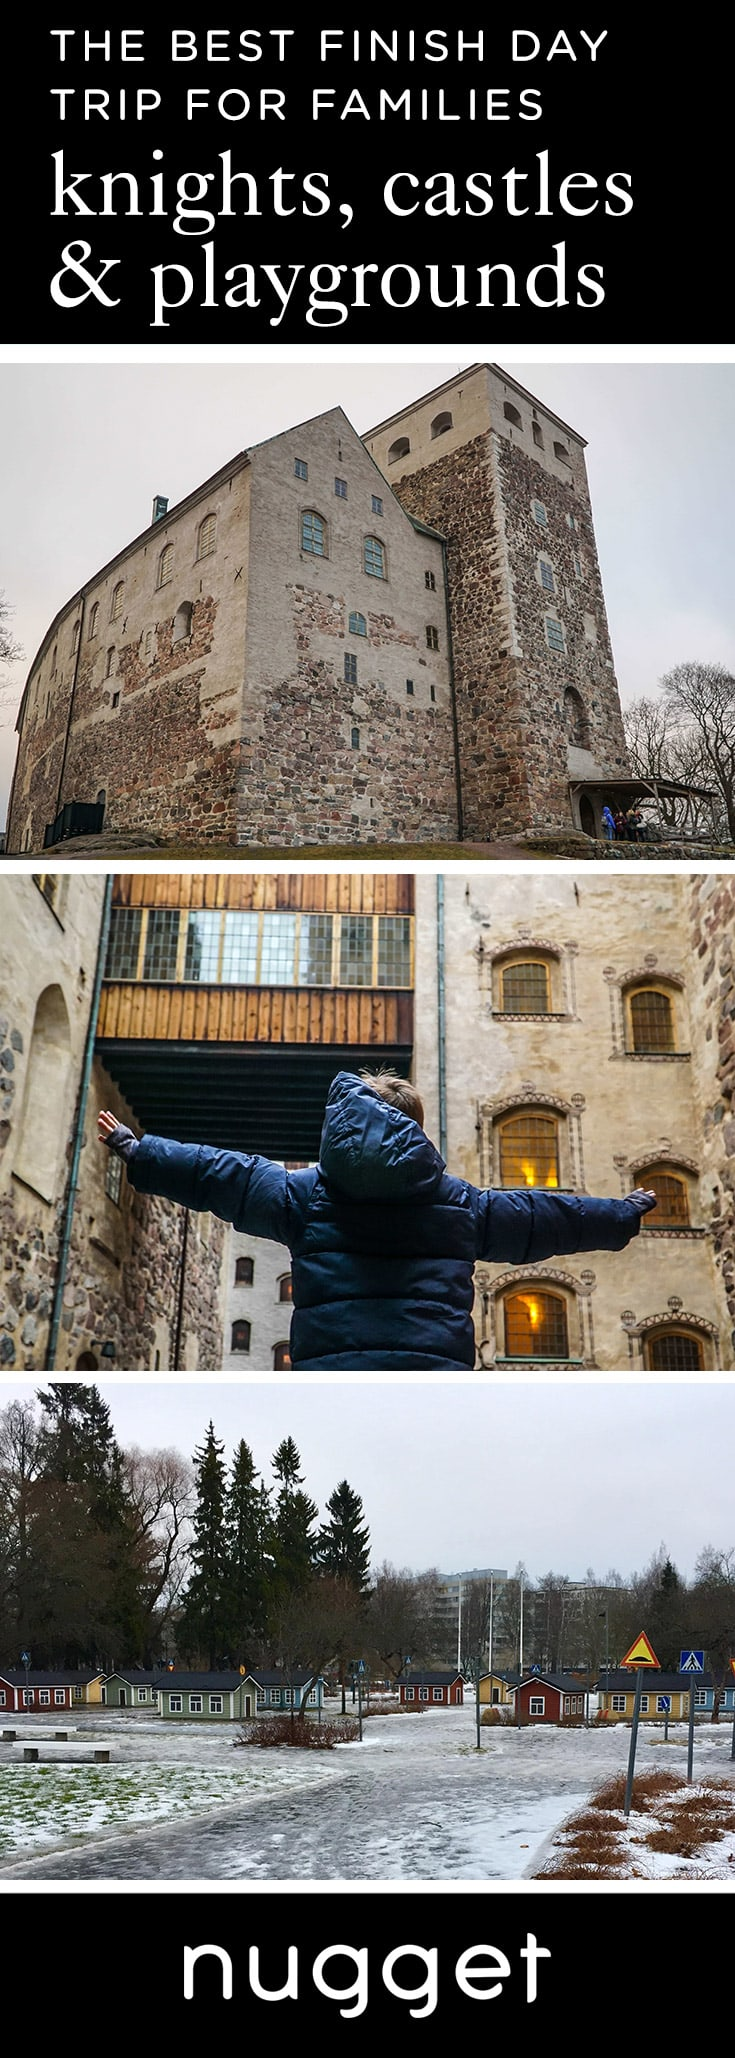 Turku Castle: A Day Filled With Finnish Knights and Fun